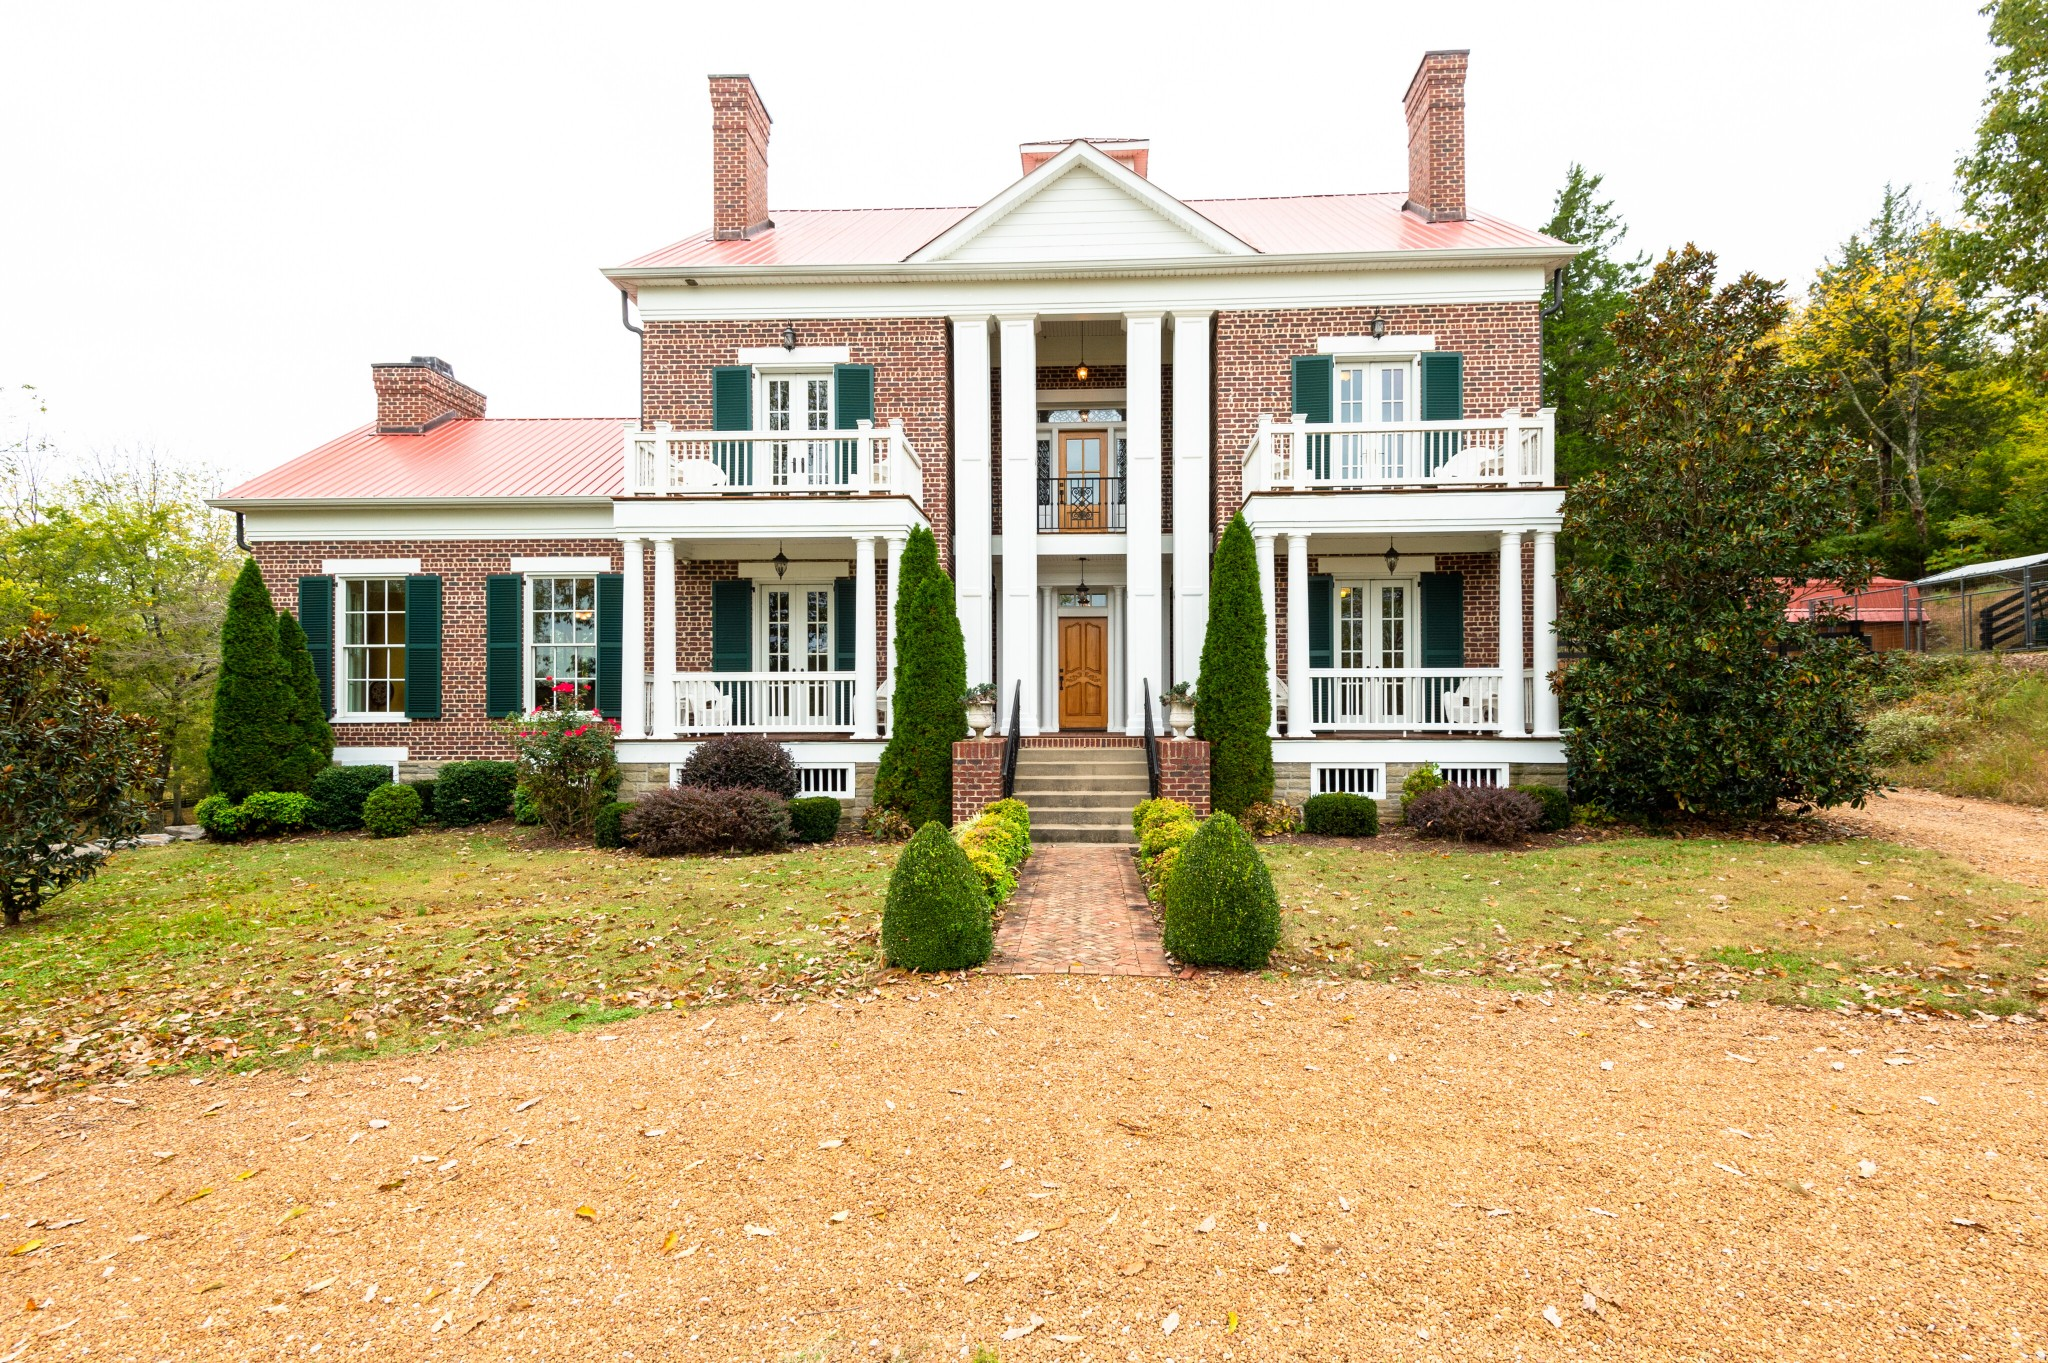 8221 Horton Hwy Property Photo - College Grove, TN real estate listing